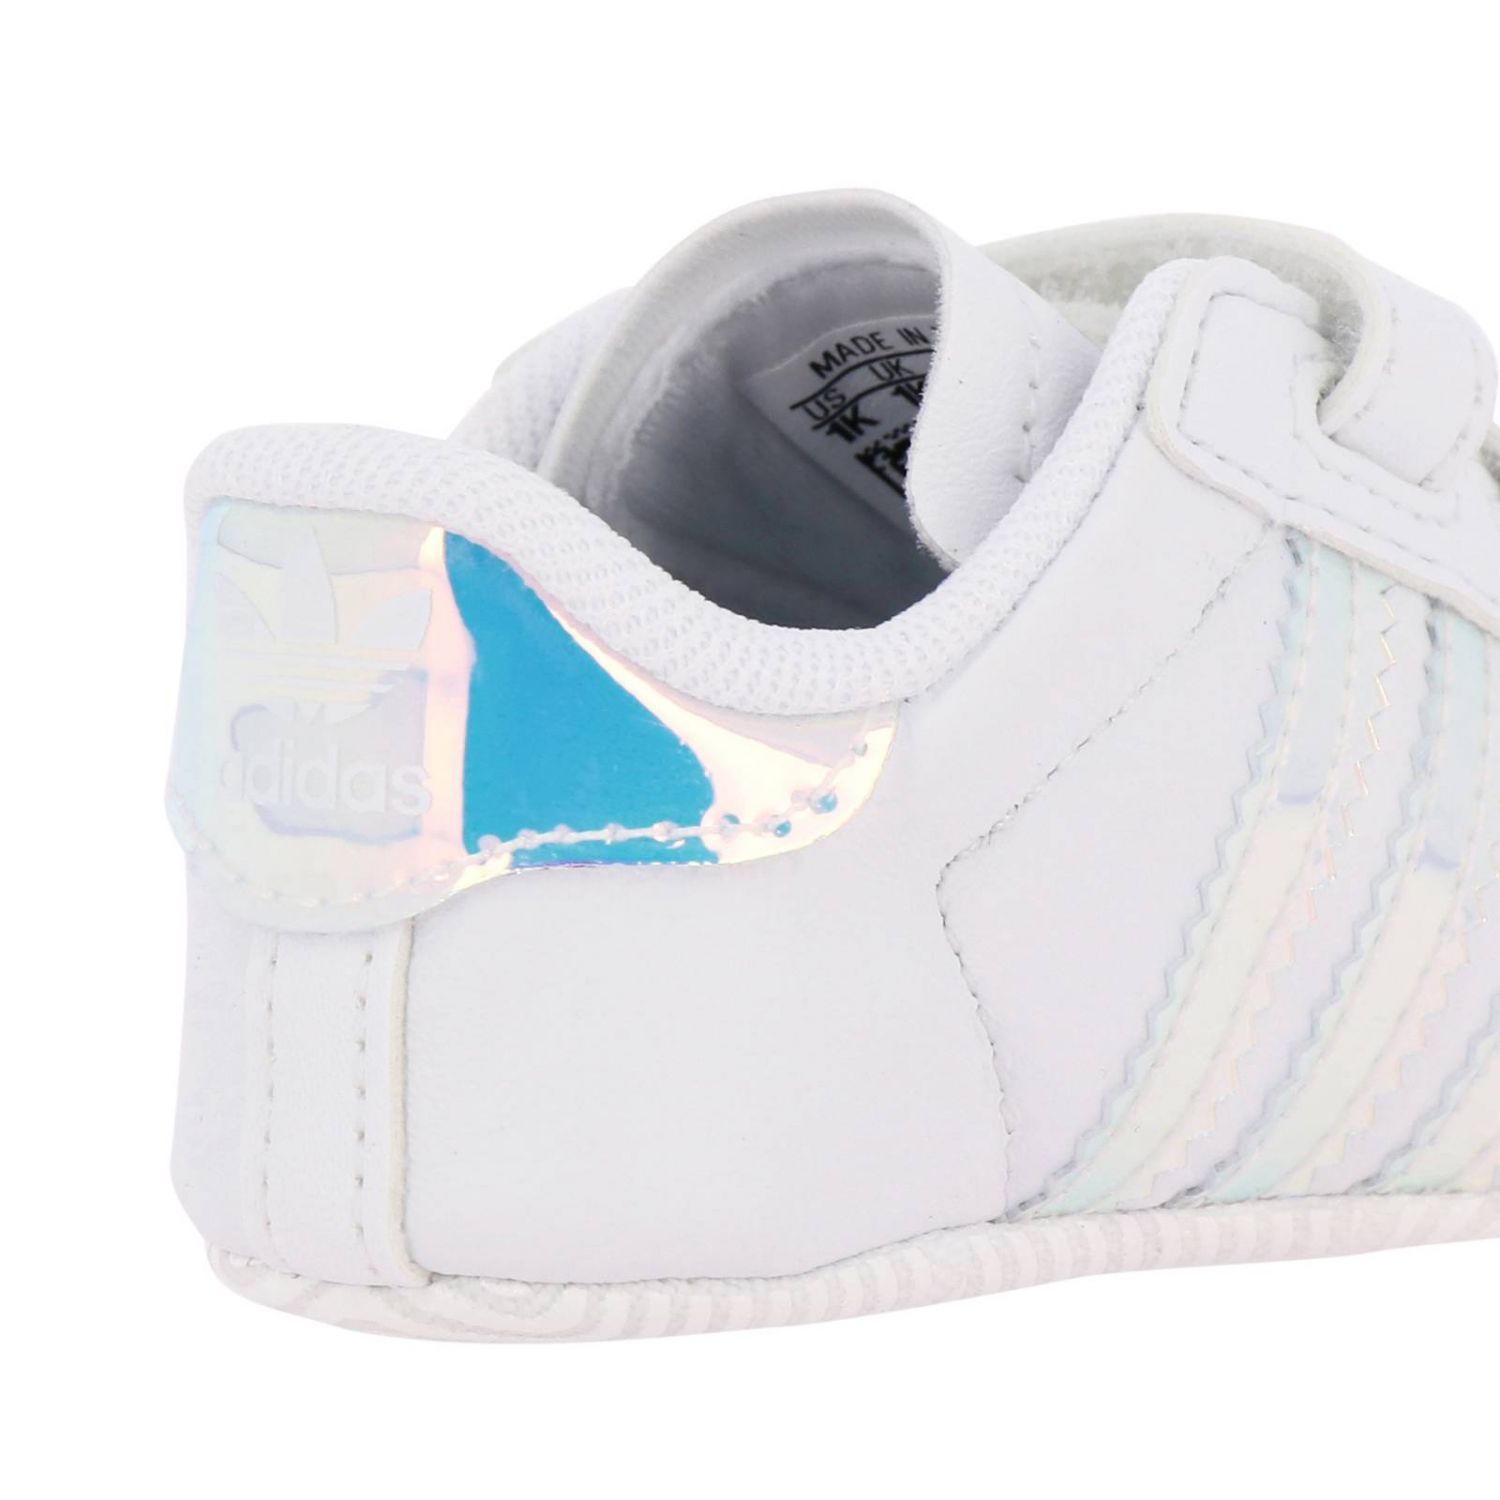 Superstar Crib Adidas Originals sneakers in leather with mirrored trim white 4